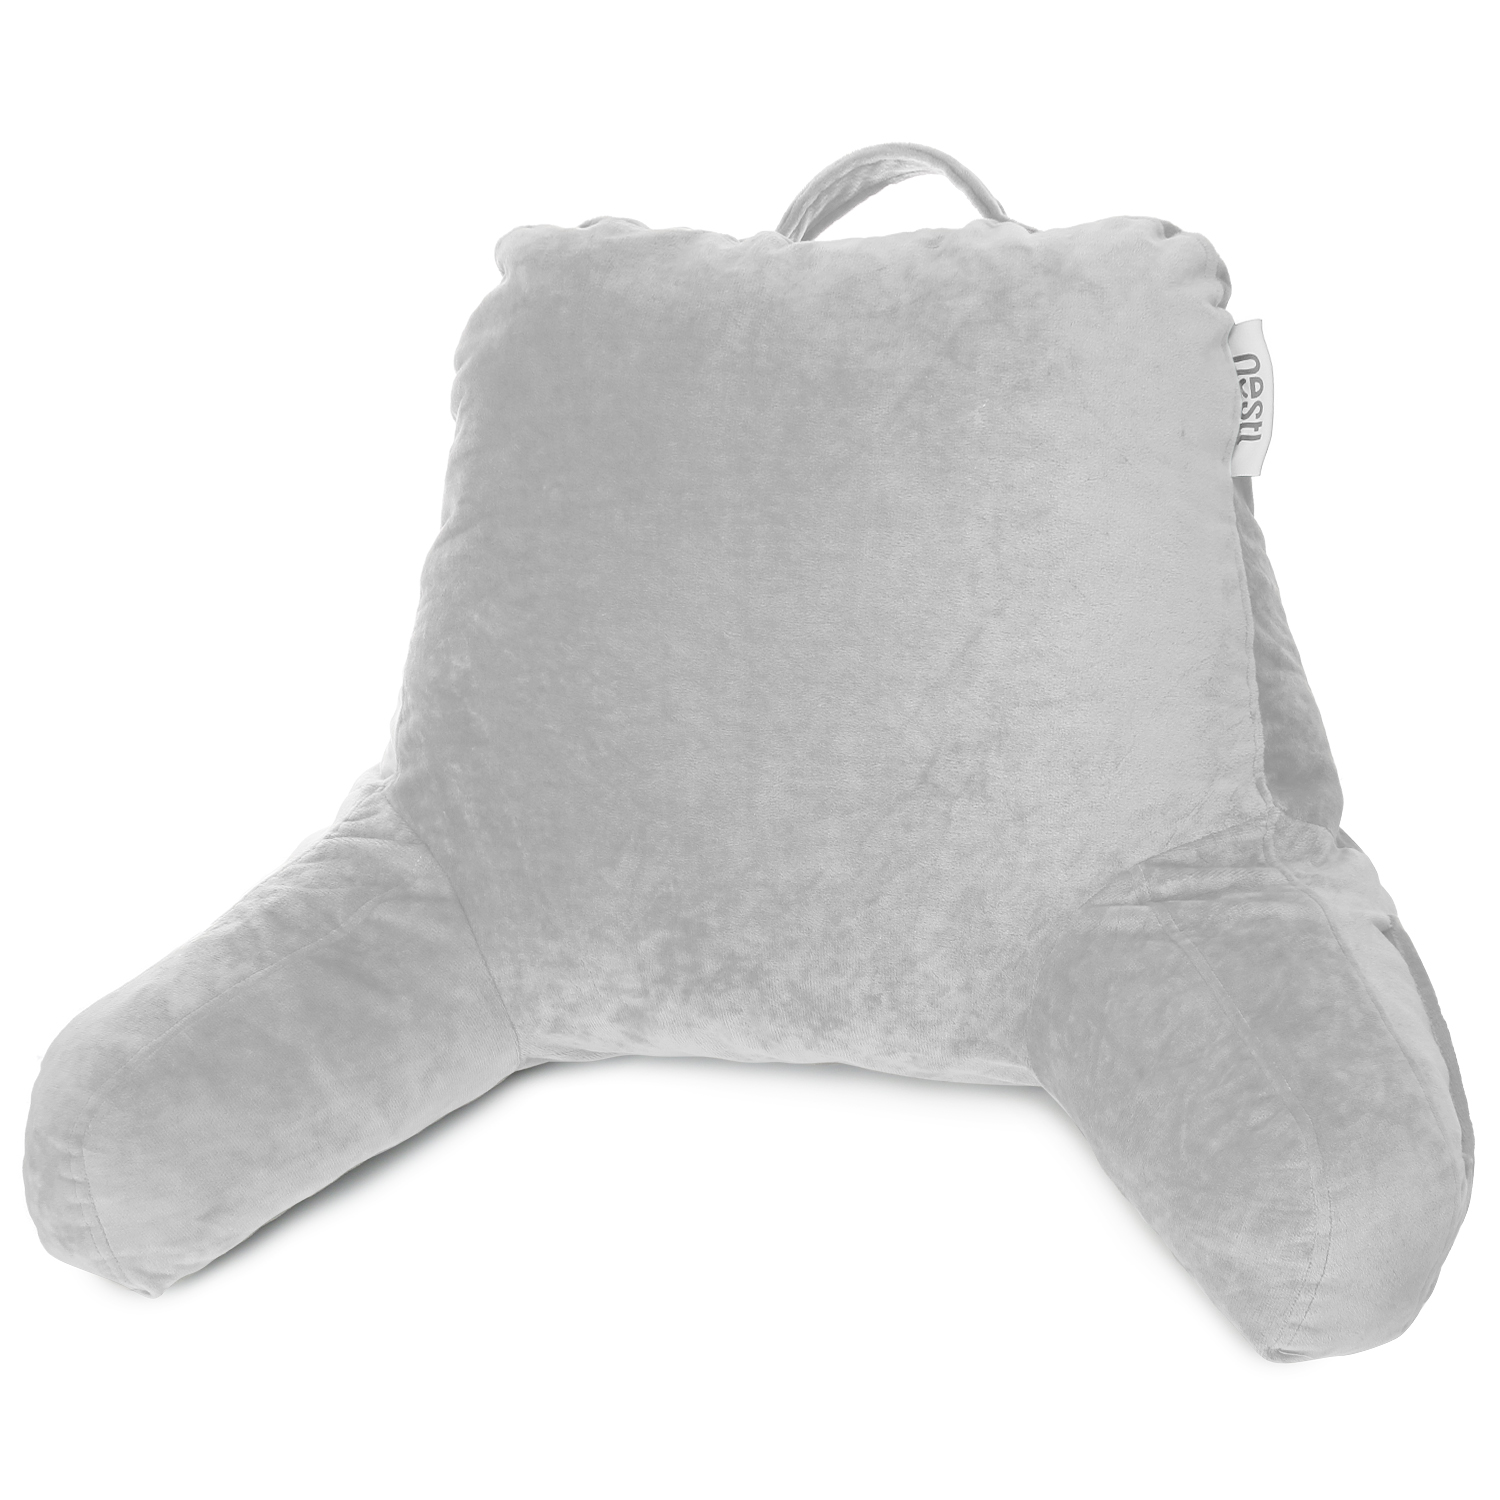 nestl reading pillow medium bed rest pillow with arms for kids teens adults premium shredded memory foam tv pillow silver